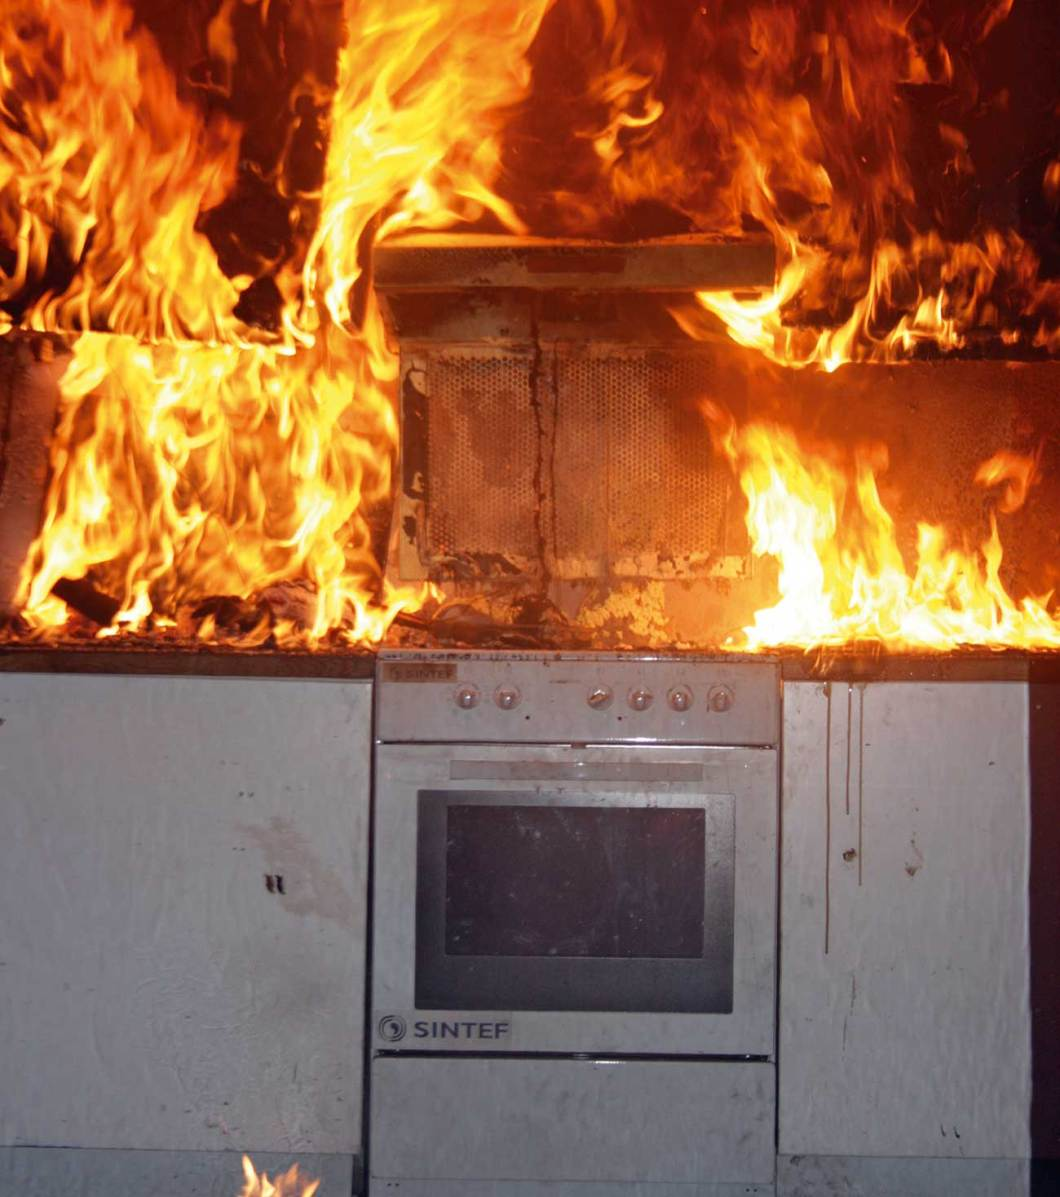 Experiments on cooking fires and stove guards, at SP Fire Research (formerly SINTEF NBL). A new European standard for the performance of different classes of stove guards has been published.